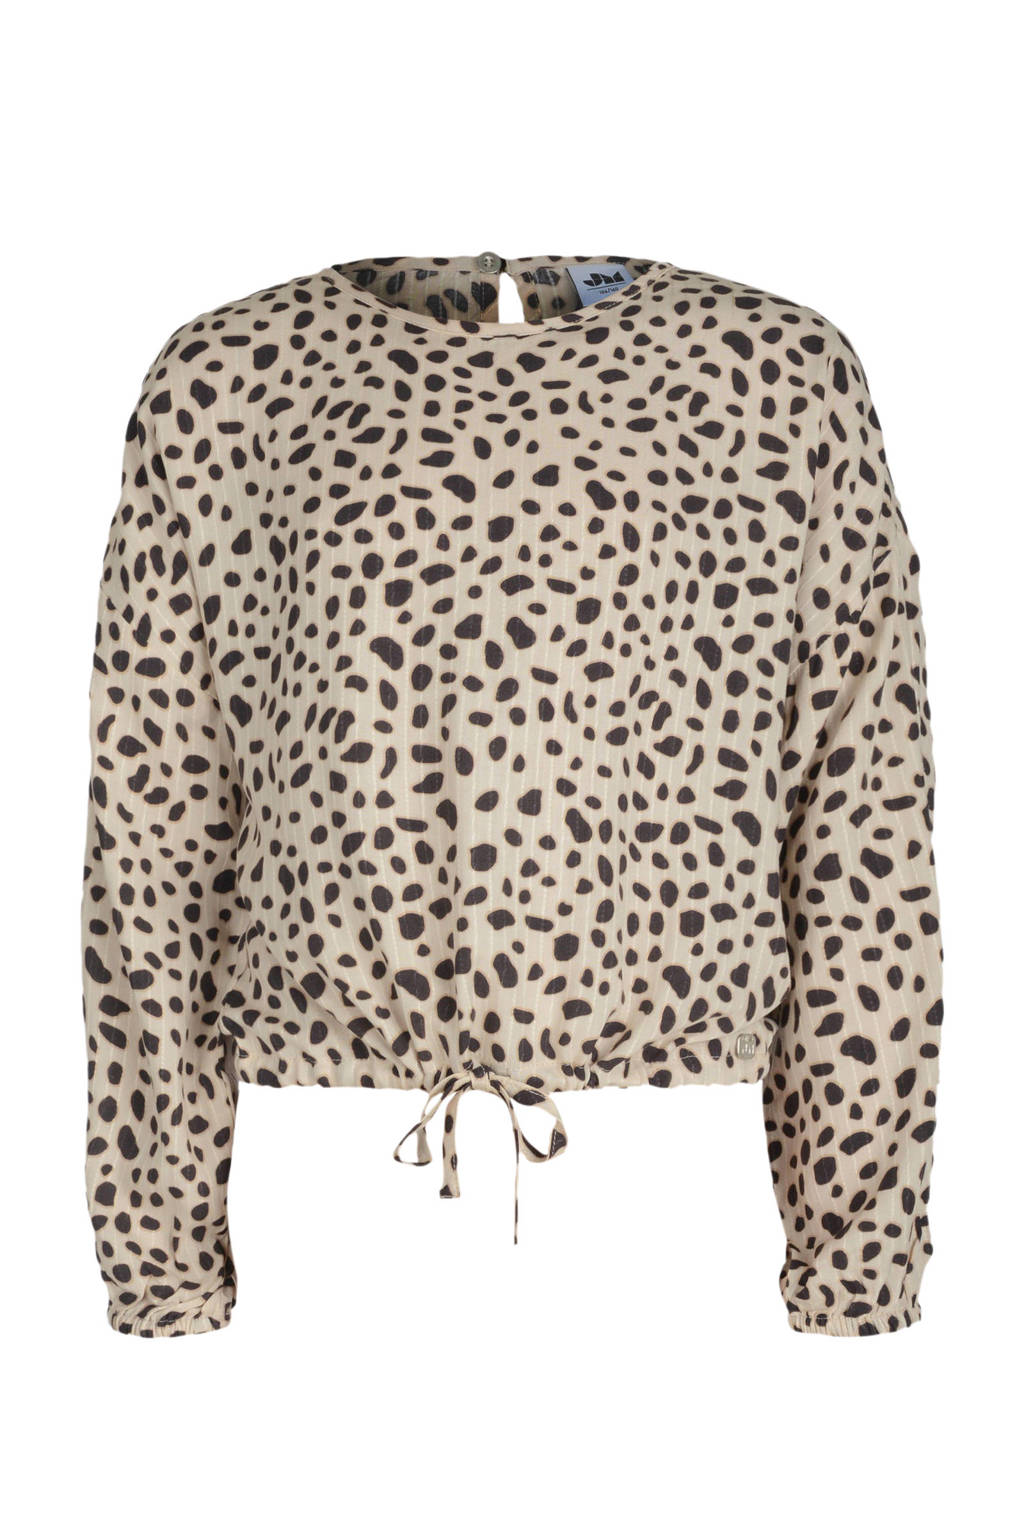 Jill & Mitch by Shoeby blouse Kan met all over print beige/antraciet, Beige/antraciet